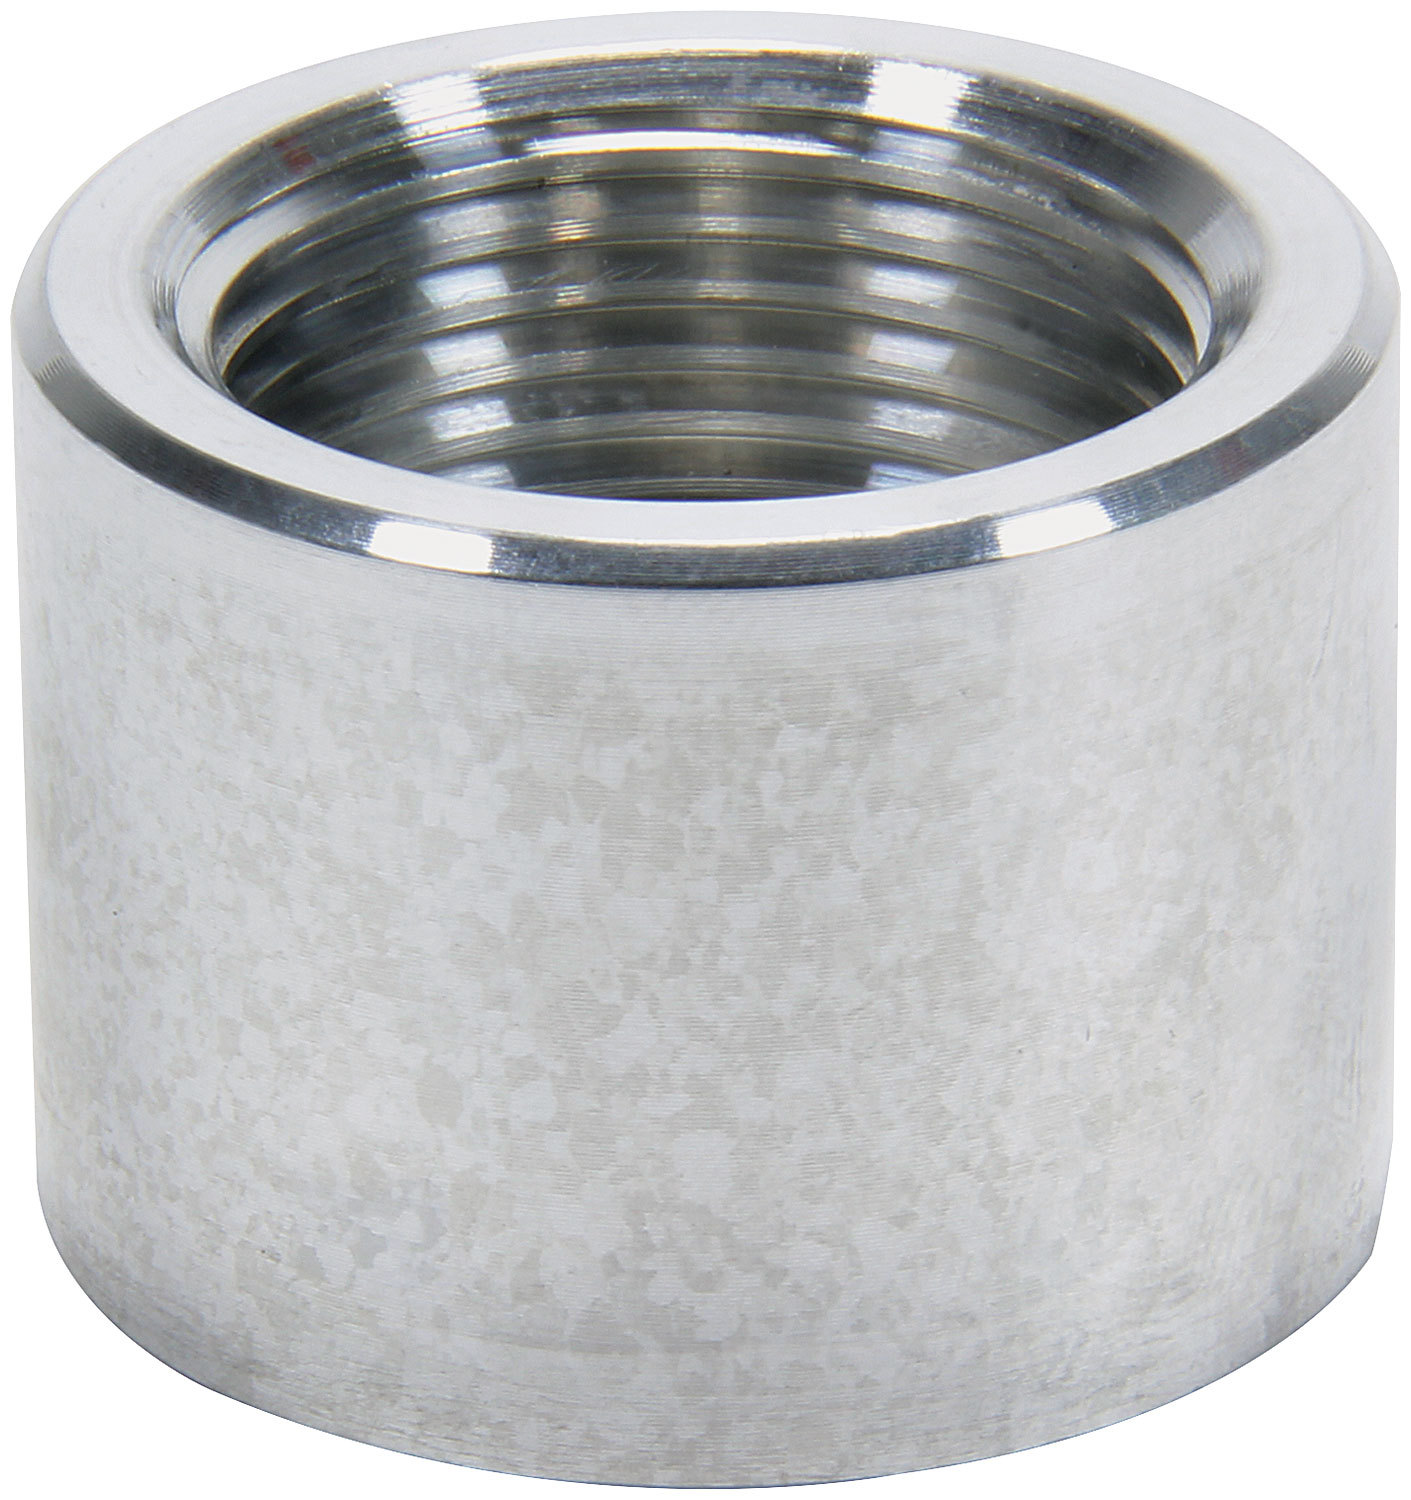 Allstar Performance 50744 Bung, 3/4 in NPT Female, Weld-On, Aluminum, Natural, Each